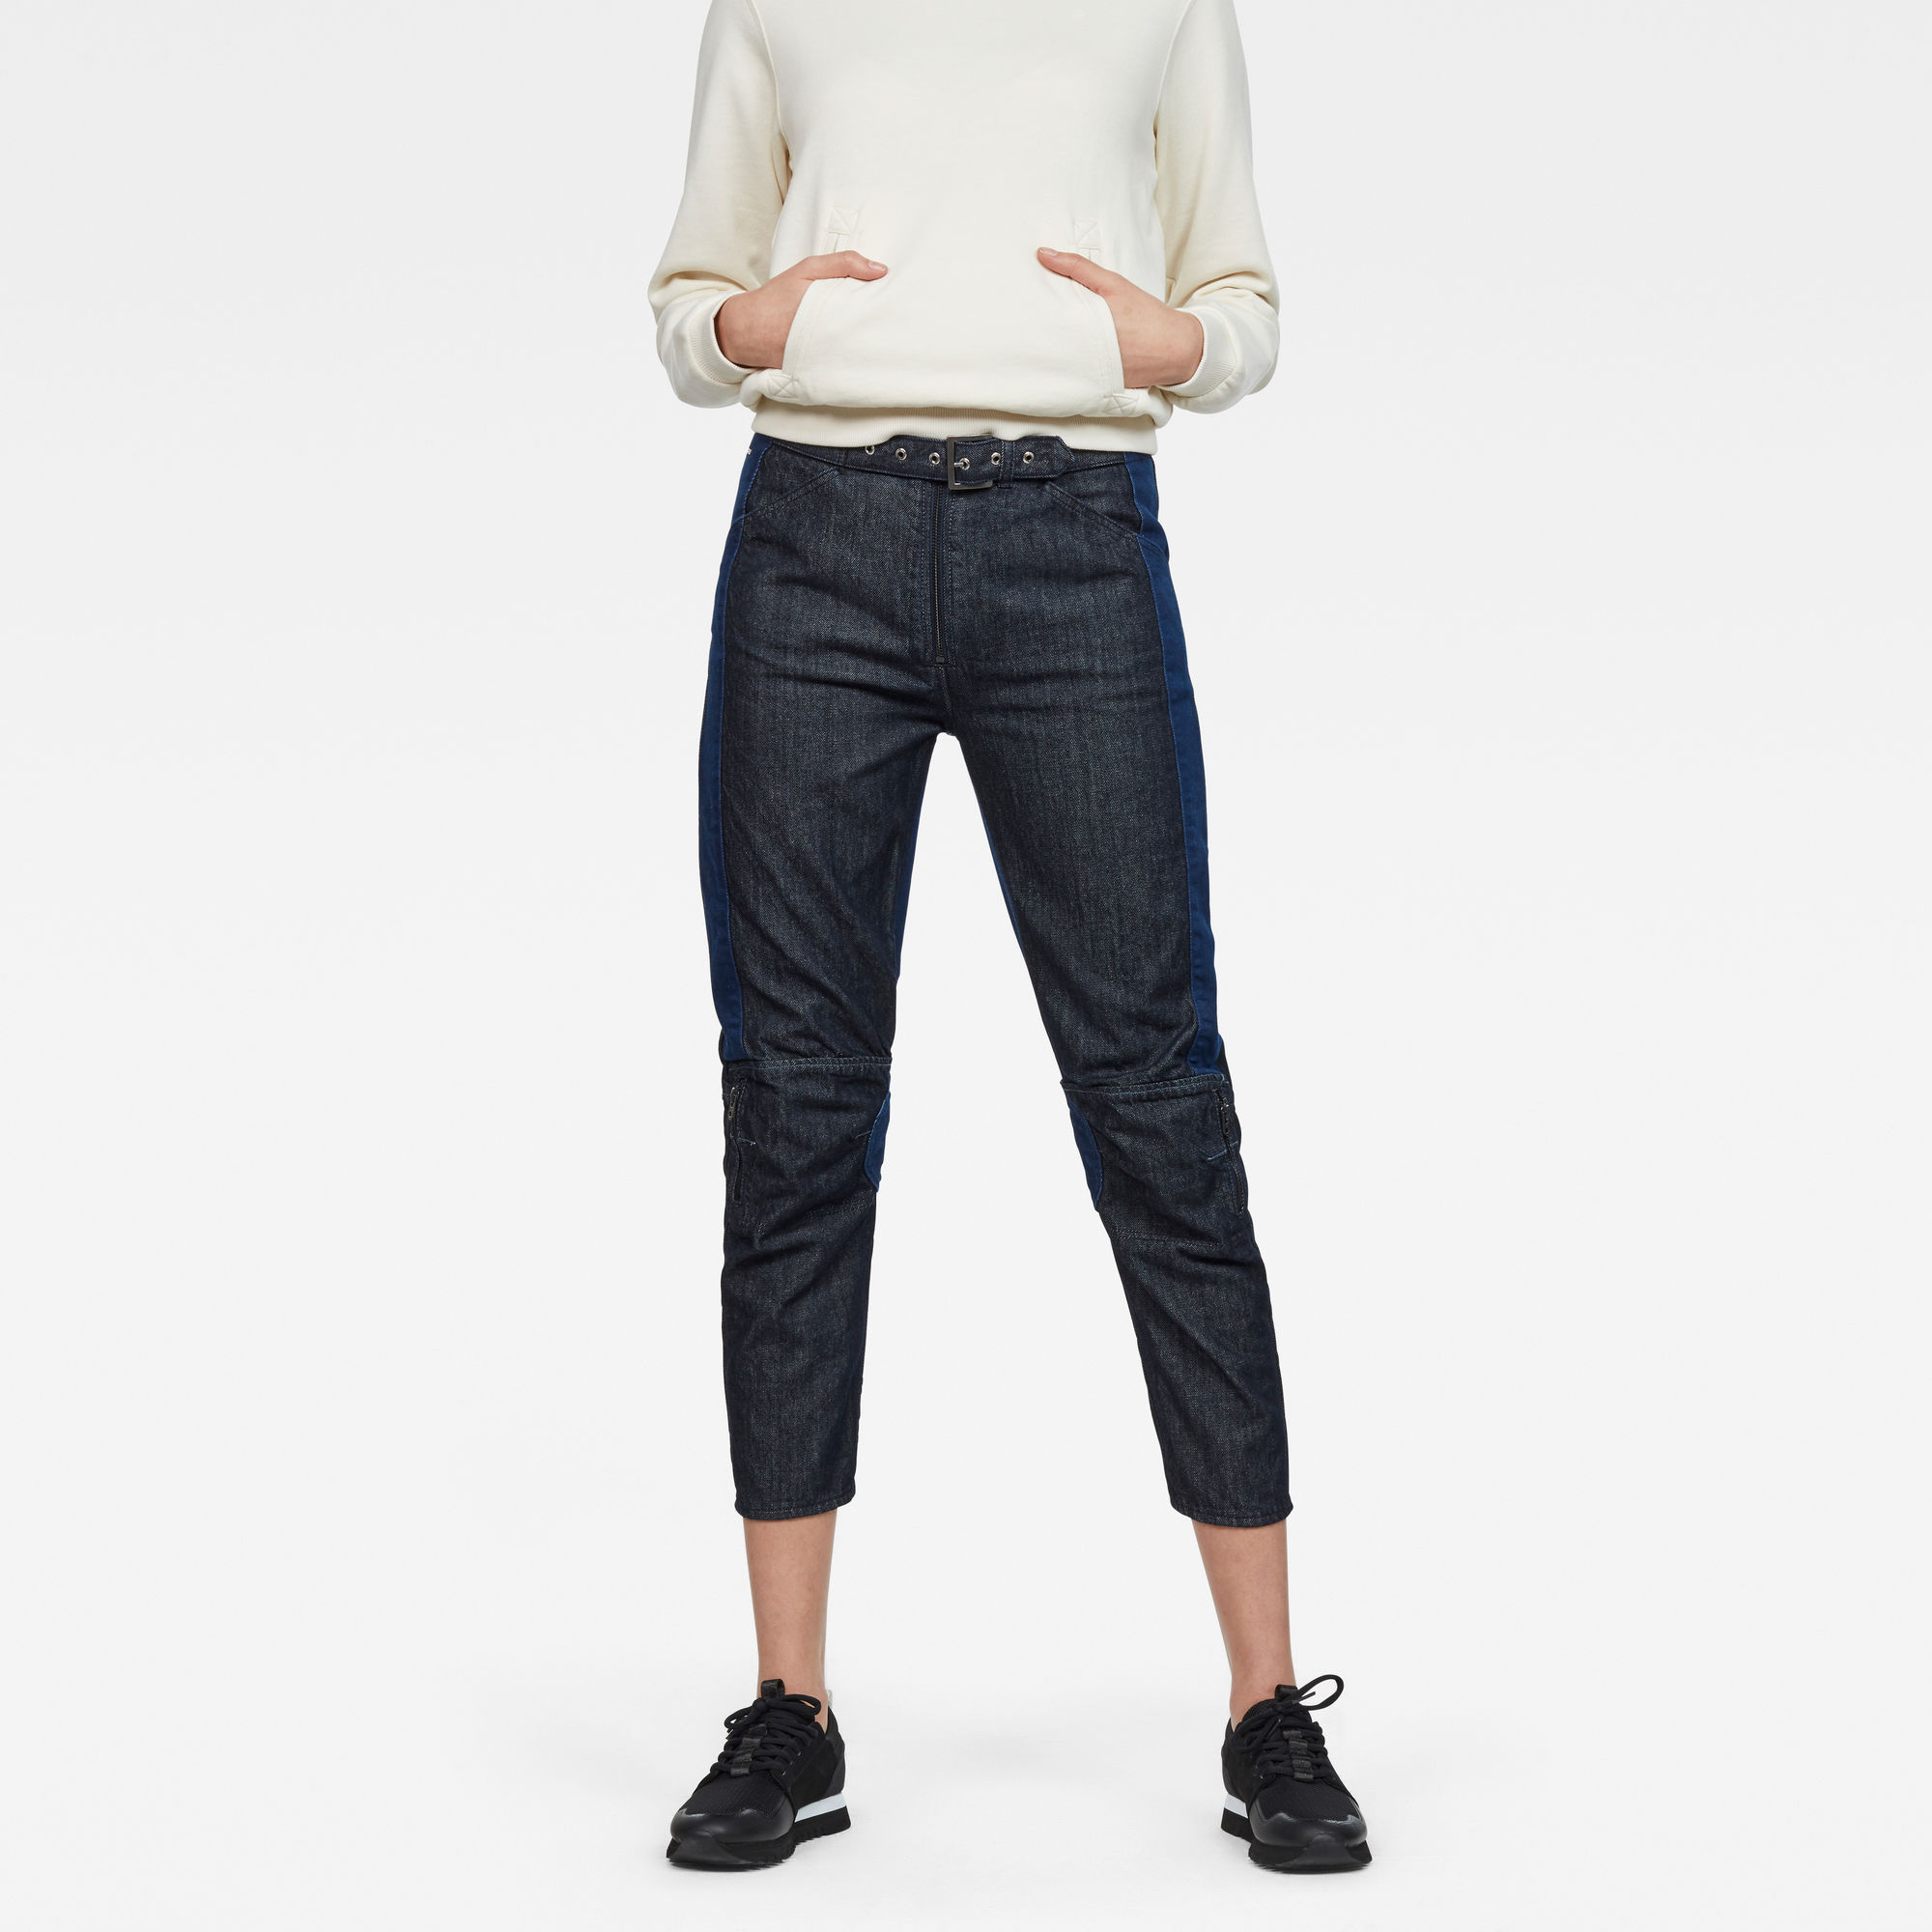 5622 Racewood High Tapered 7/8-Length Jeans